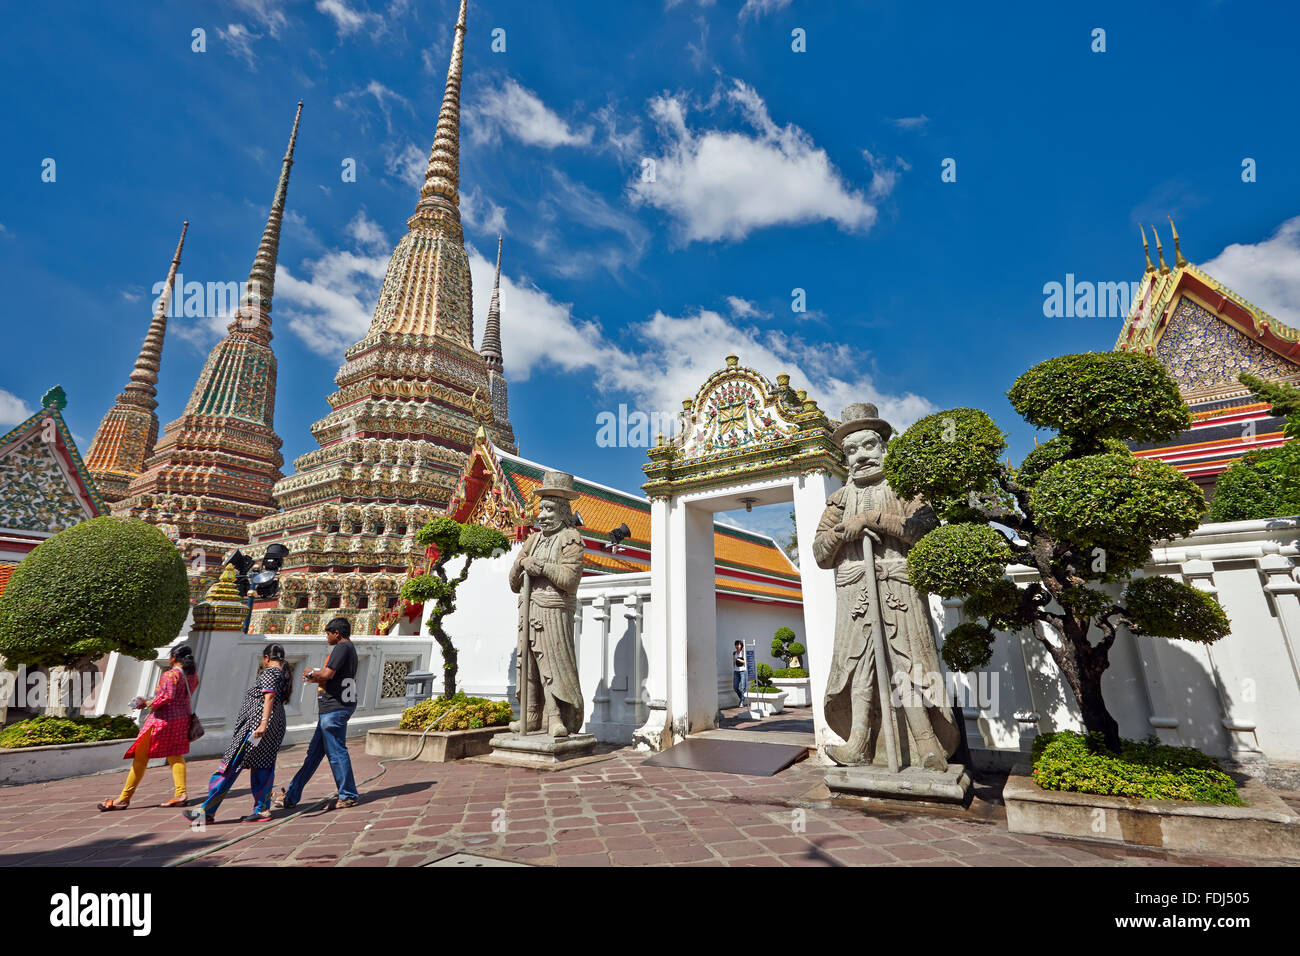 Phra Maha Chedi Si Rajakarn, The Great Pagodas of Four Kings. Wat Pho Temple, Bangkok, Thailand. - Stock Image